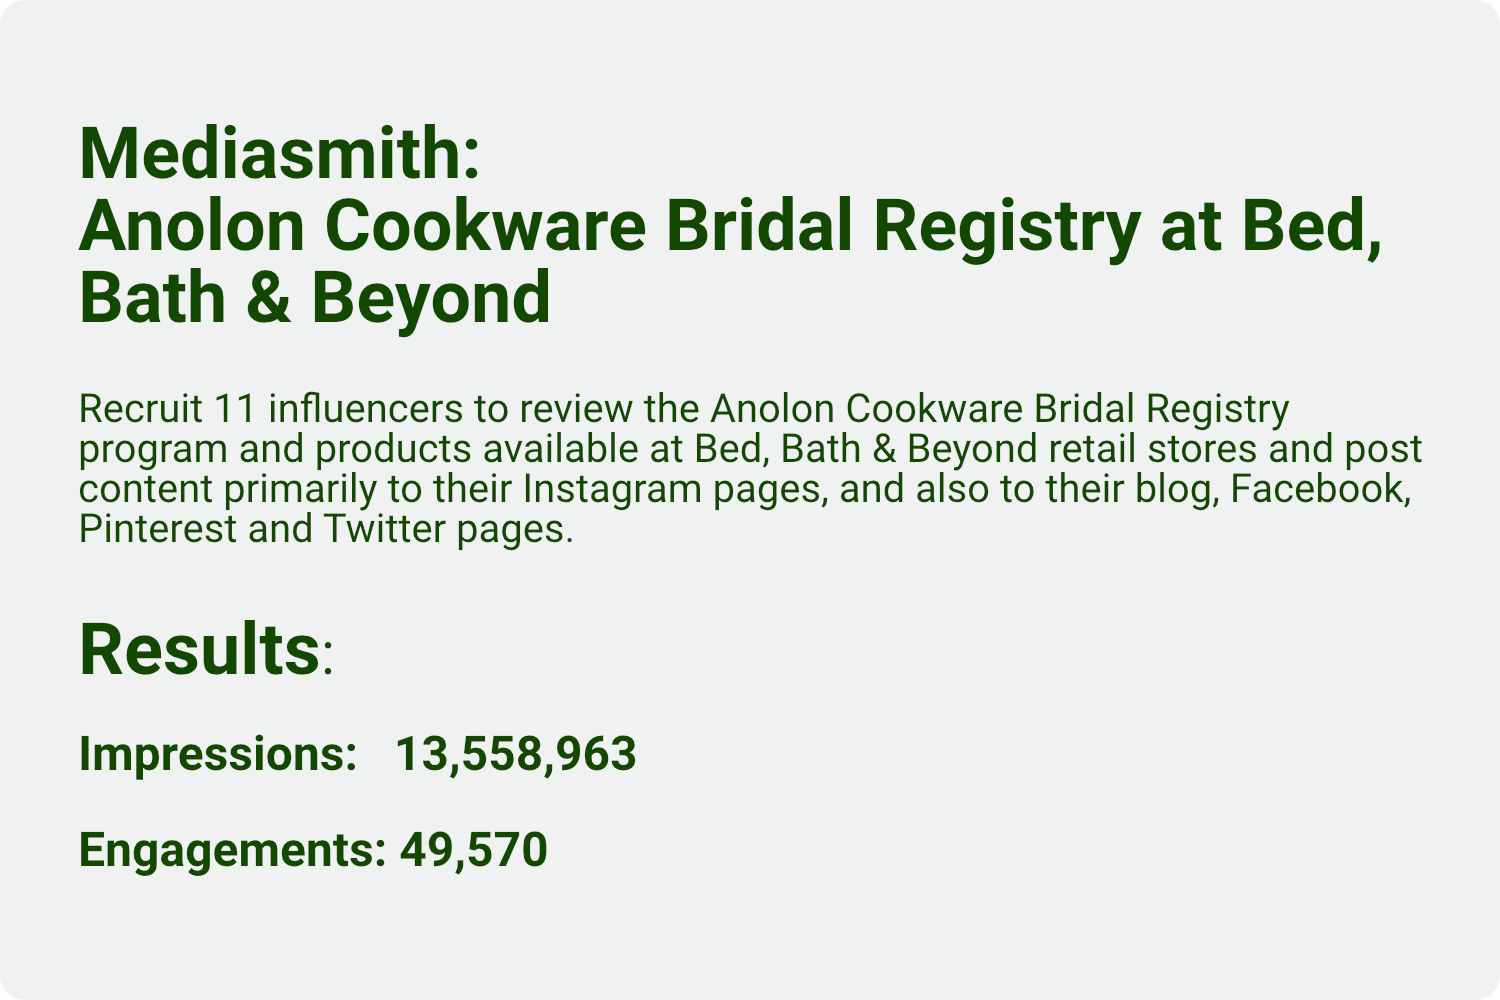 Mediasmith's Anolon Cookware Bridal Registry at Bed, Bath & Beyond campaign results.